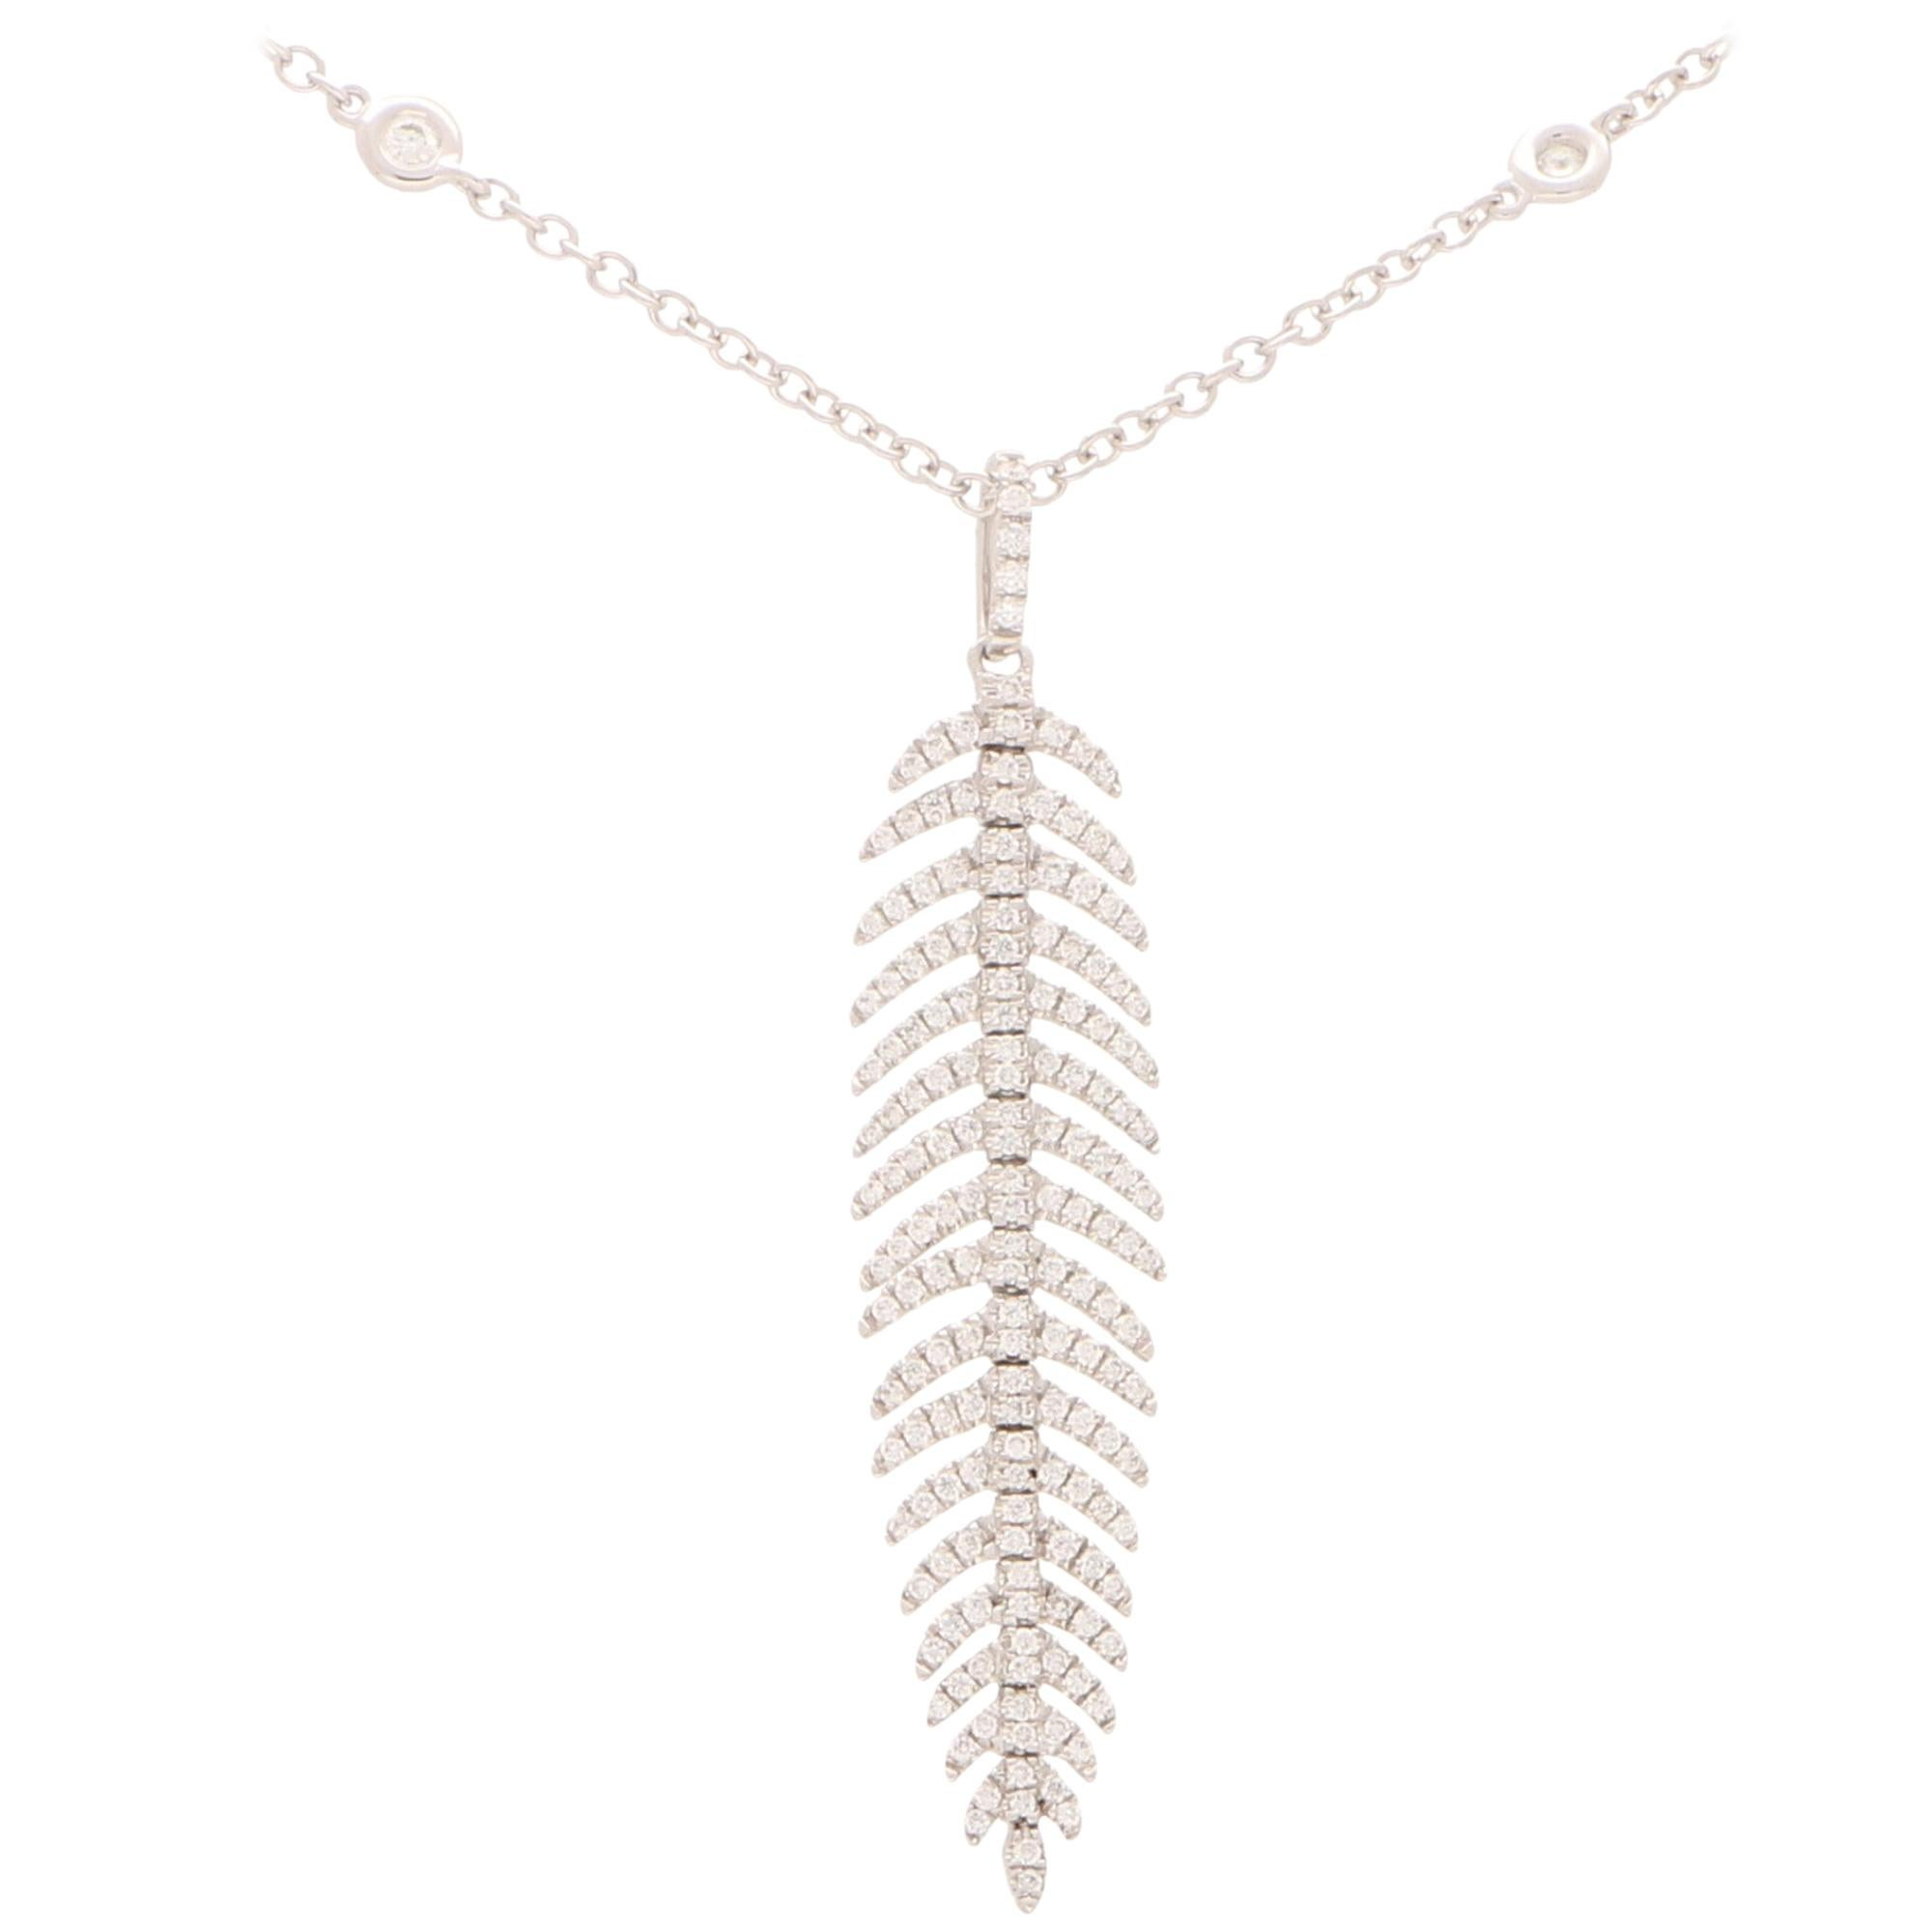 Articulated Diamond Feather Necklace in 18 Karat White Gold